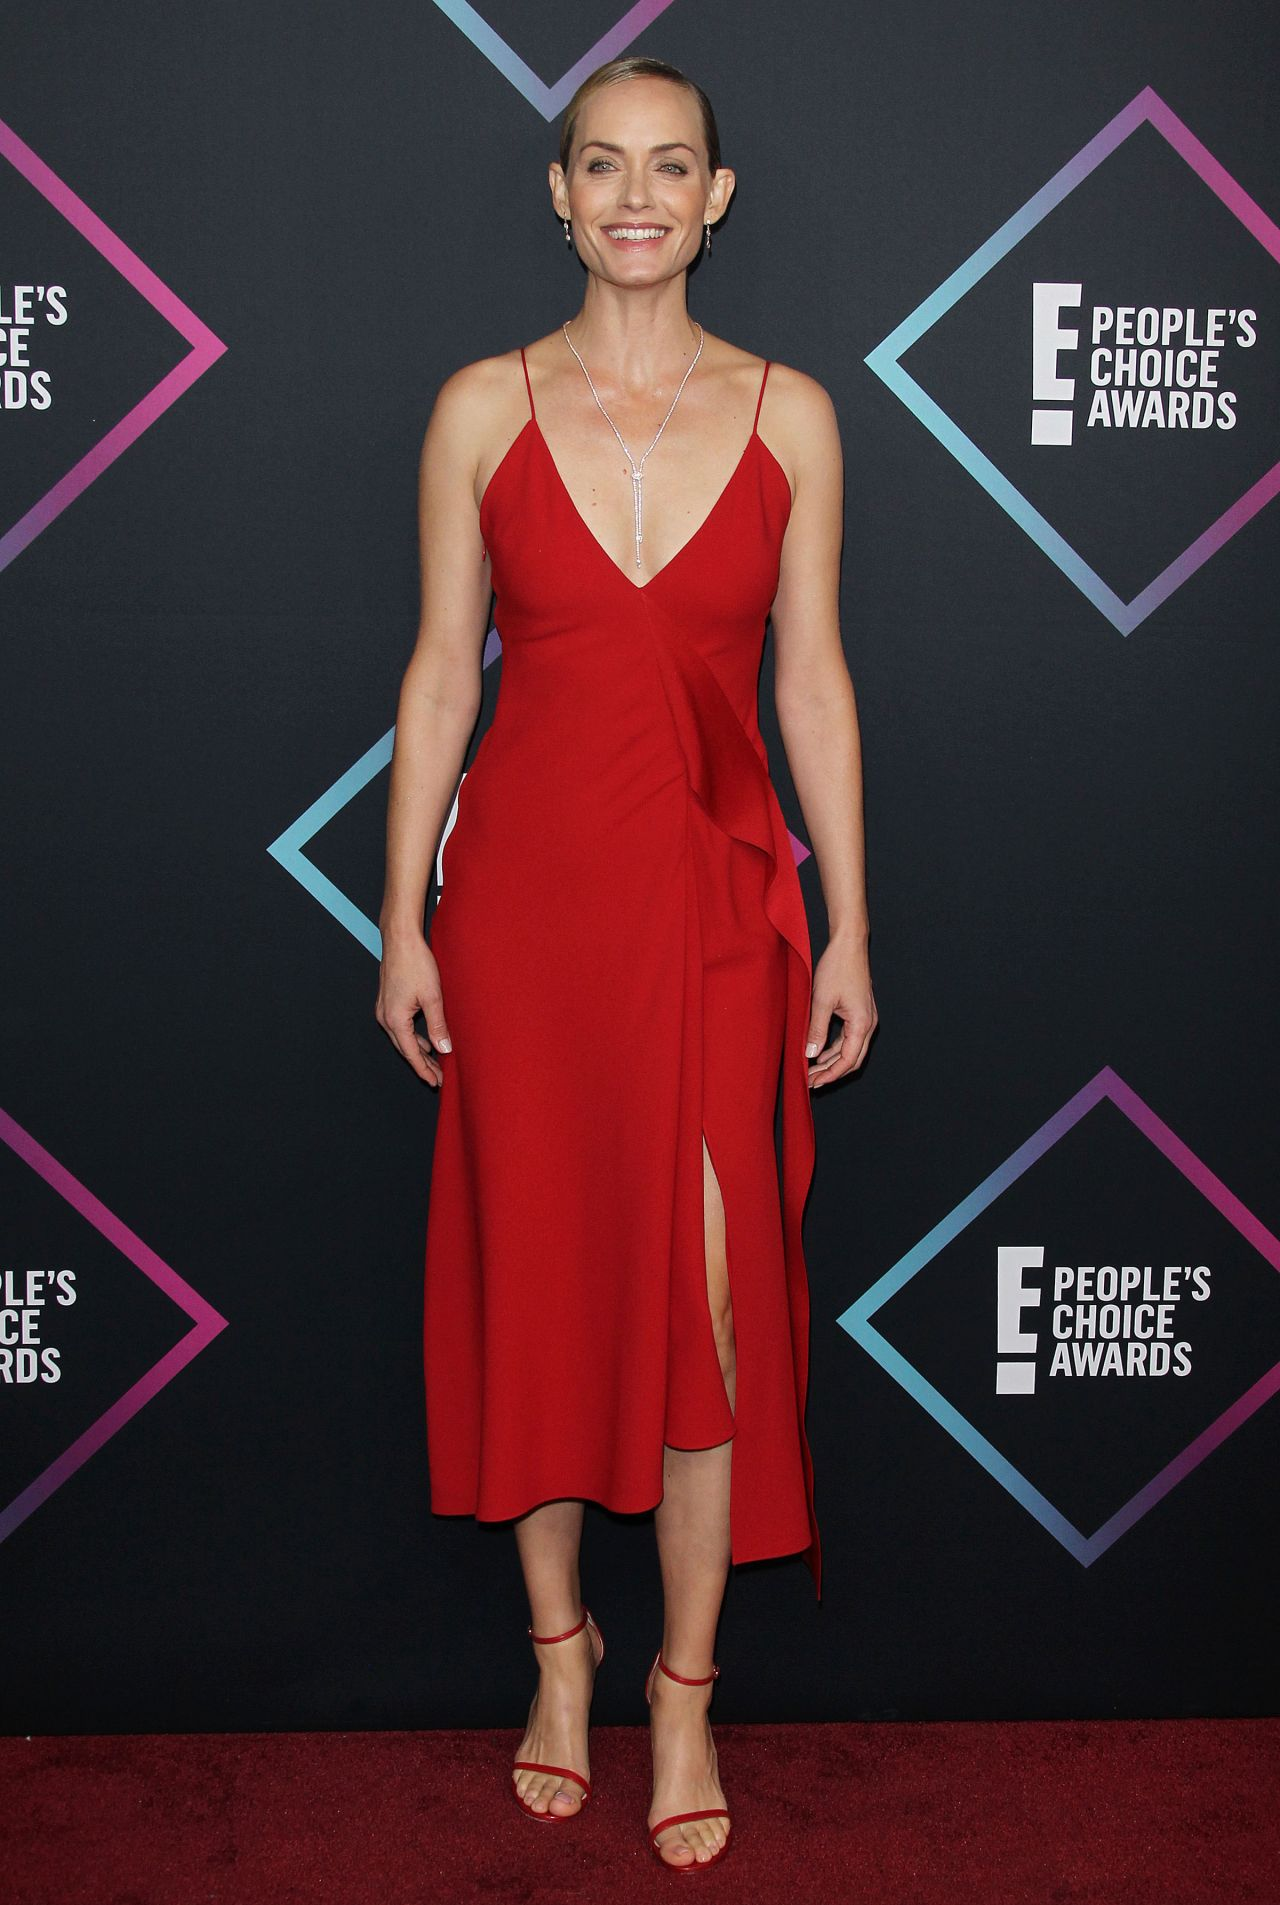 amber valletta choice awards monica santa peoples carpet celebzz celebmafia